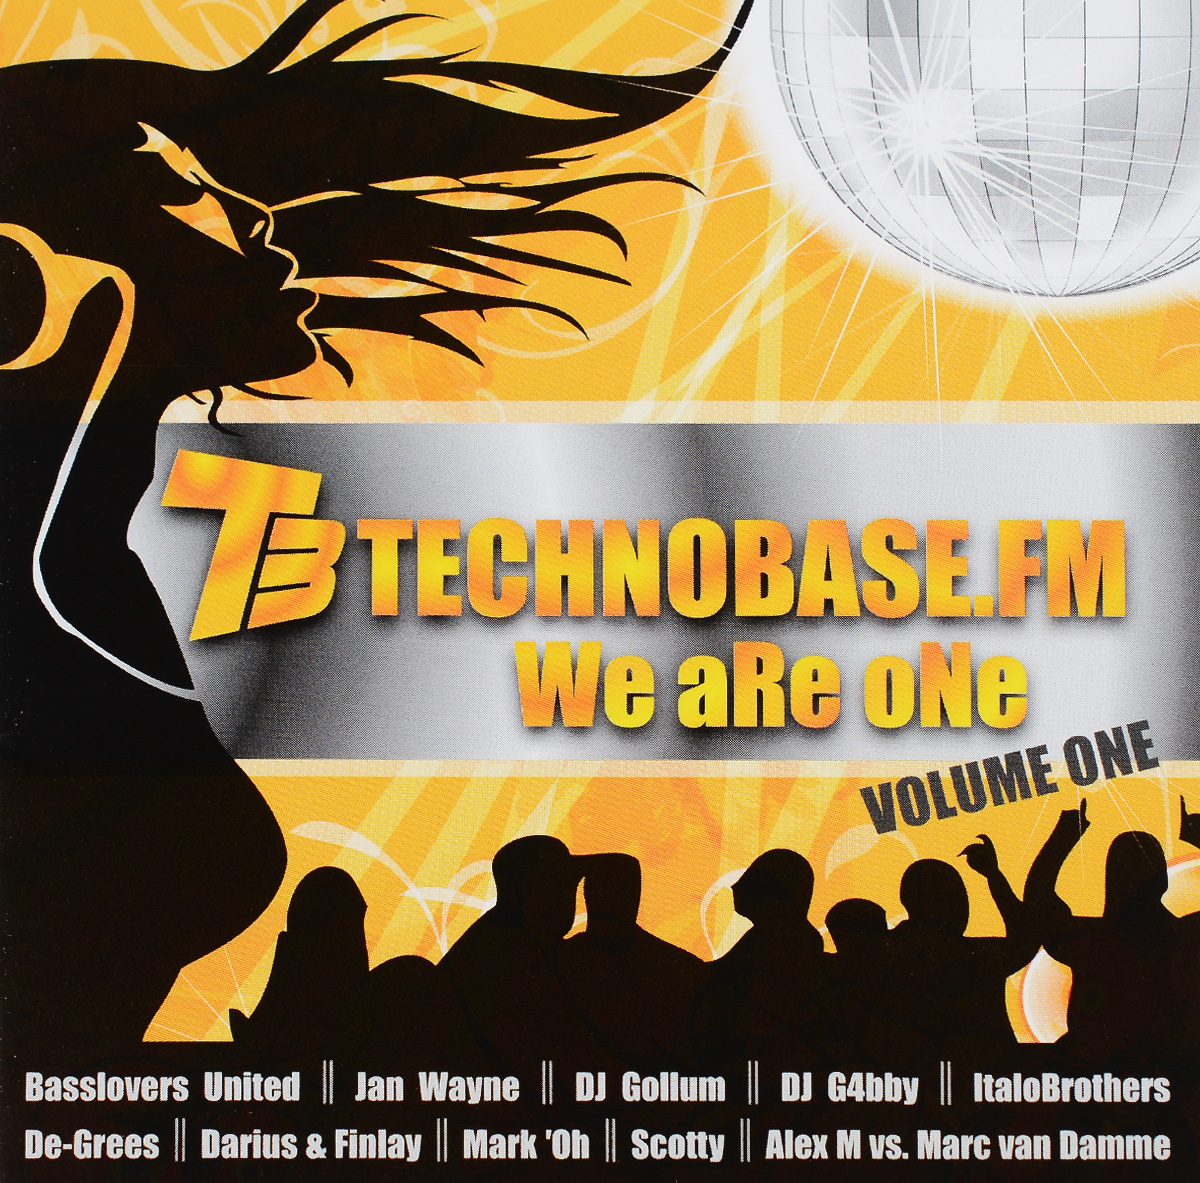 DJ G4bby,Ян Ване,De-Grees,Italobrothers,Dj Gollum,Dj Lanai,Ti-Mo,Dan Winter,Dj Somy,Lazy Monkeys Technobase.FM. We Are One. Volume 1 (2 CD) leather s dj amdition level 2 cd